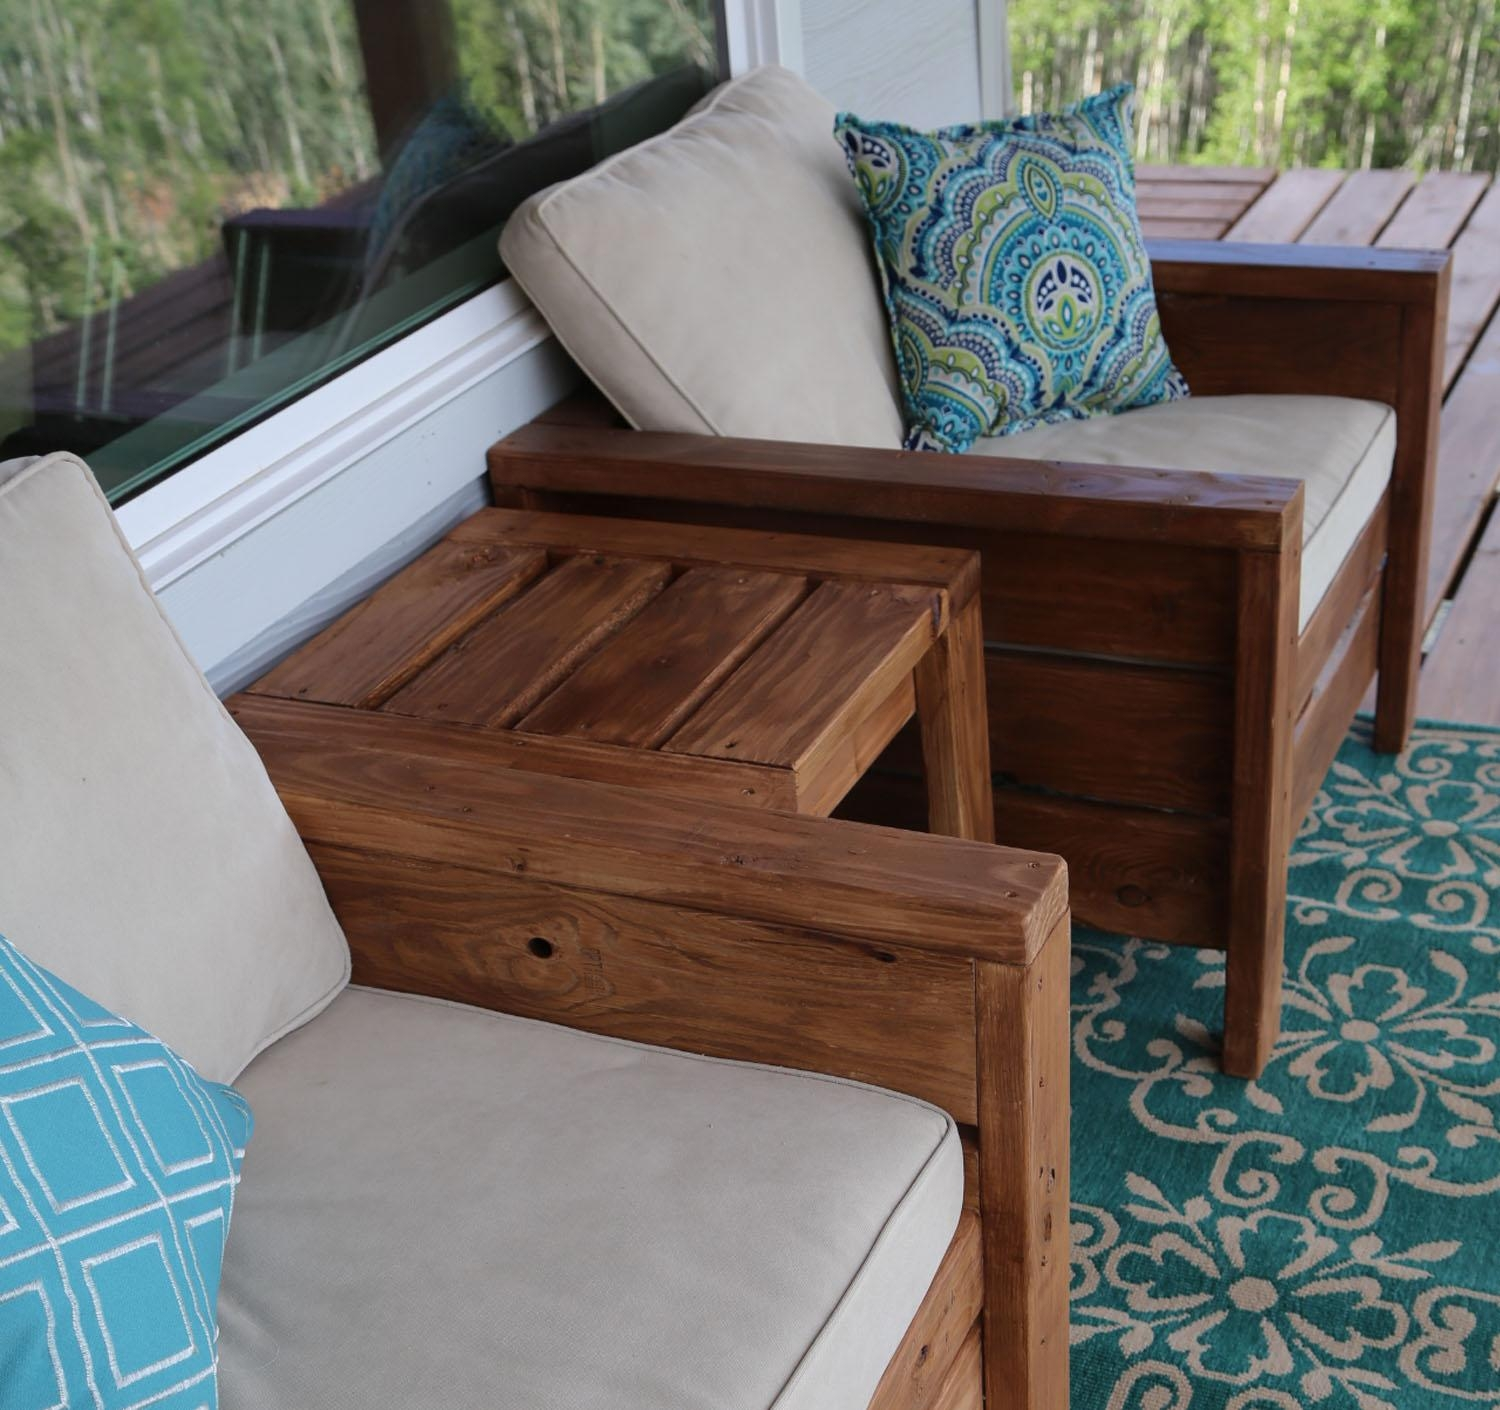 Ana White | Modern Outdoor Chair From 2X4S And 2X6S – Diy Projects Pertaining To Ana White Outdoor Sofas (Image 3 of 20)